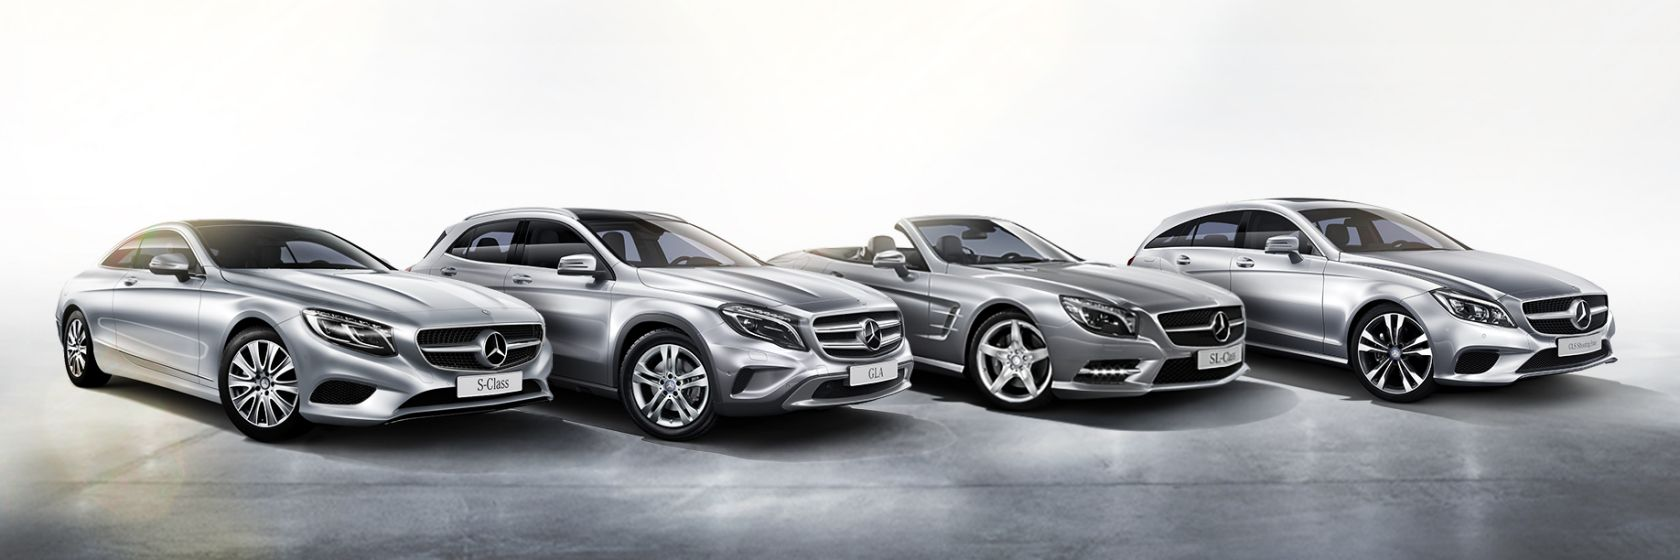 Interactive Owner's Manuals for Mercedes-Benz owners